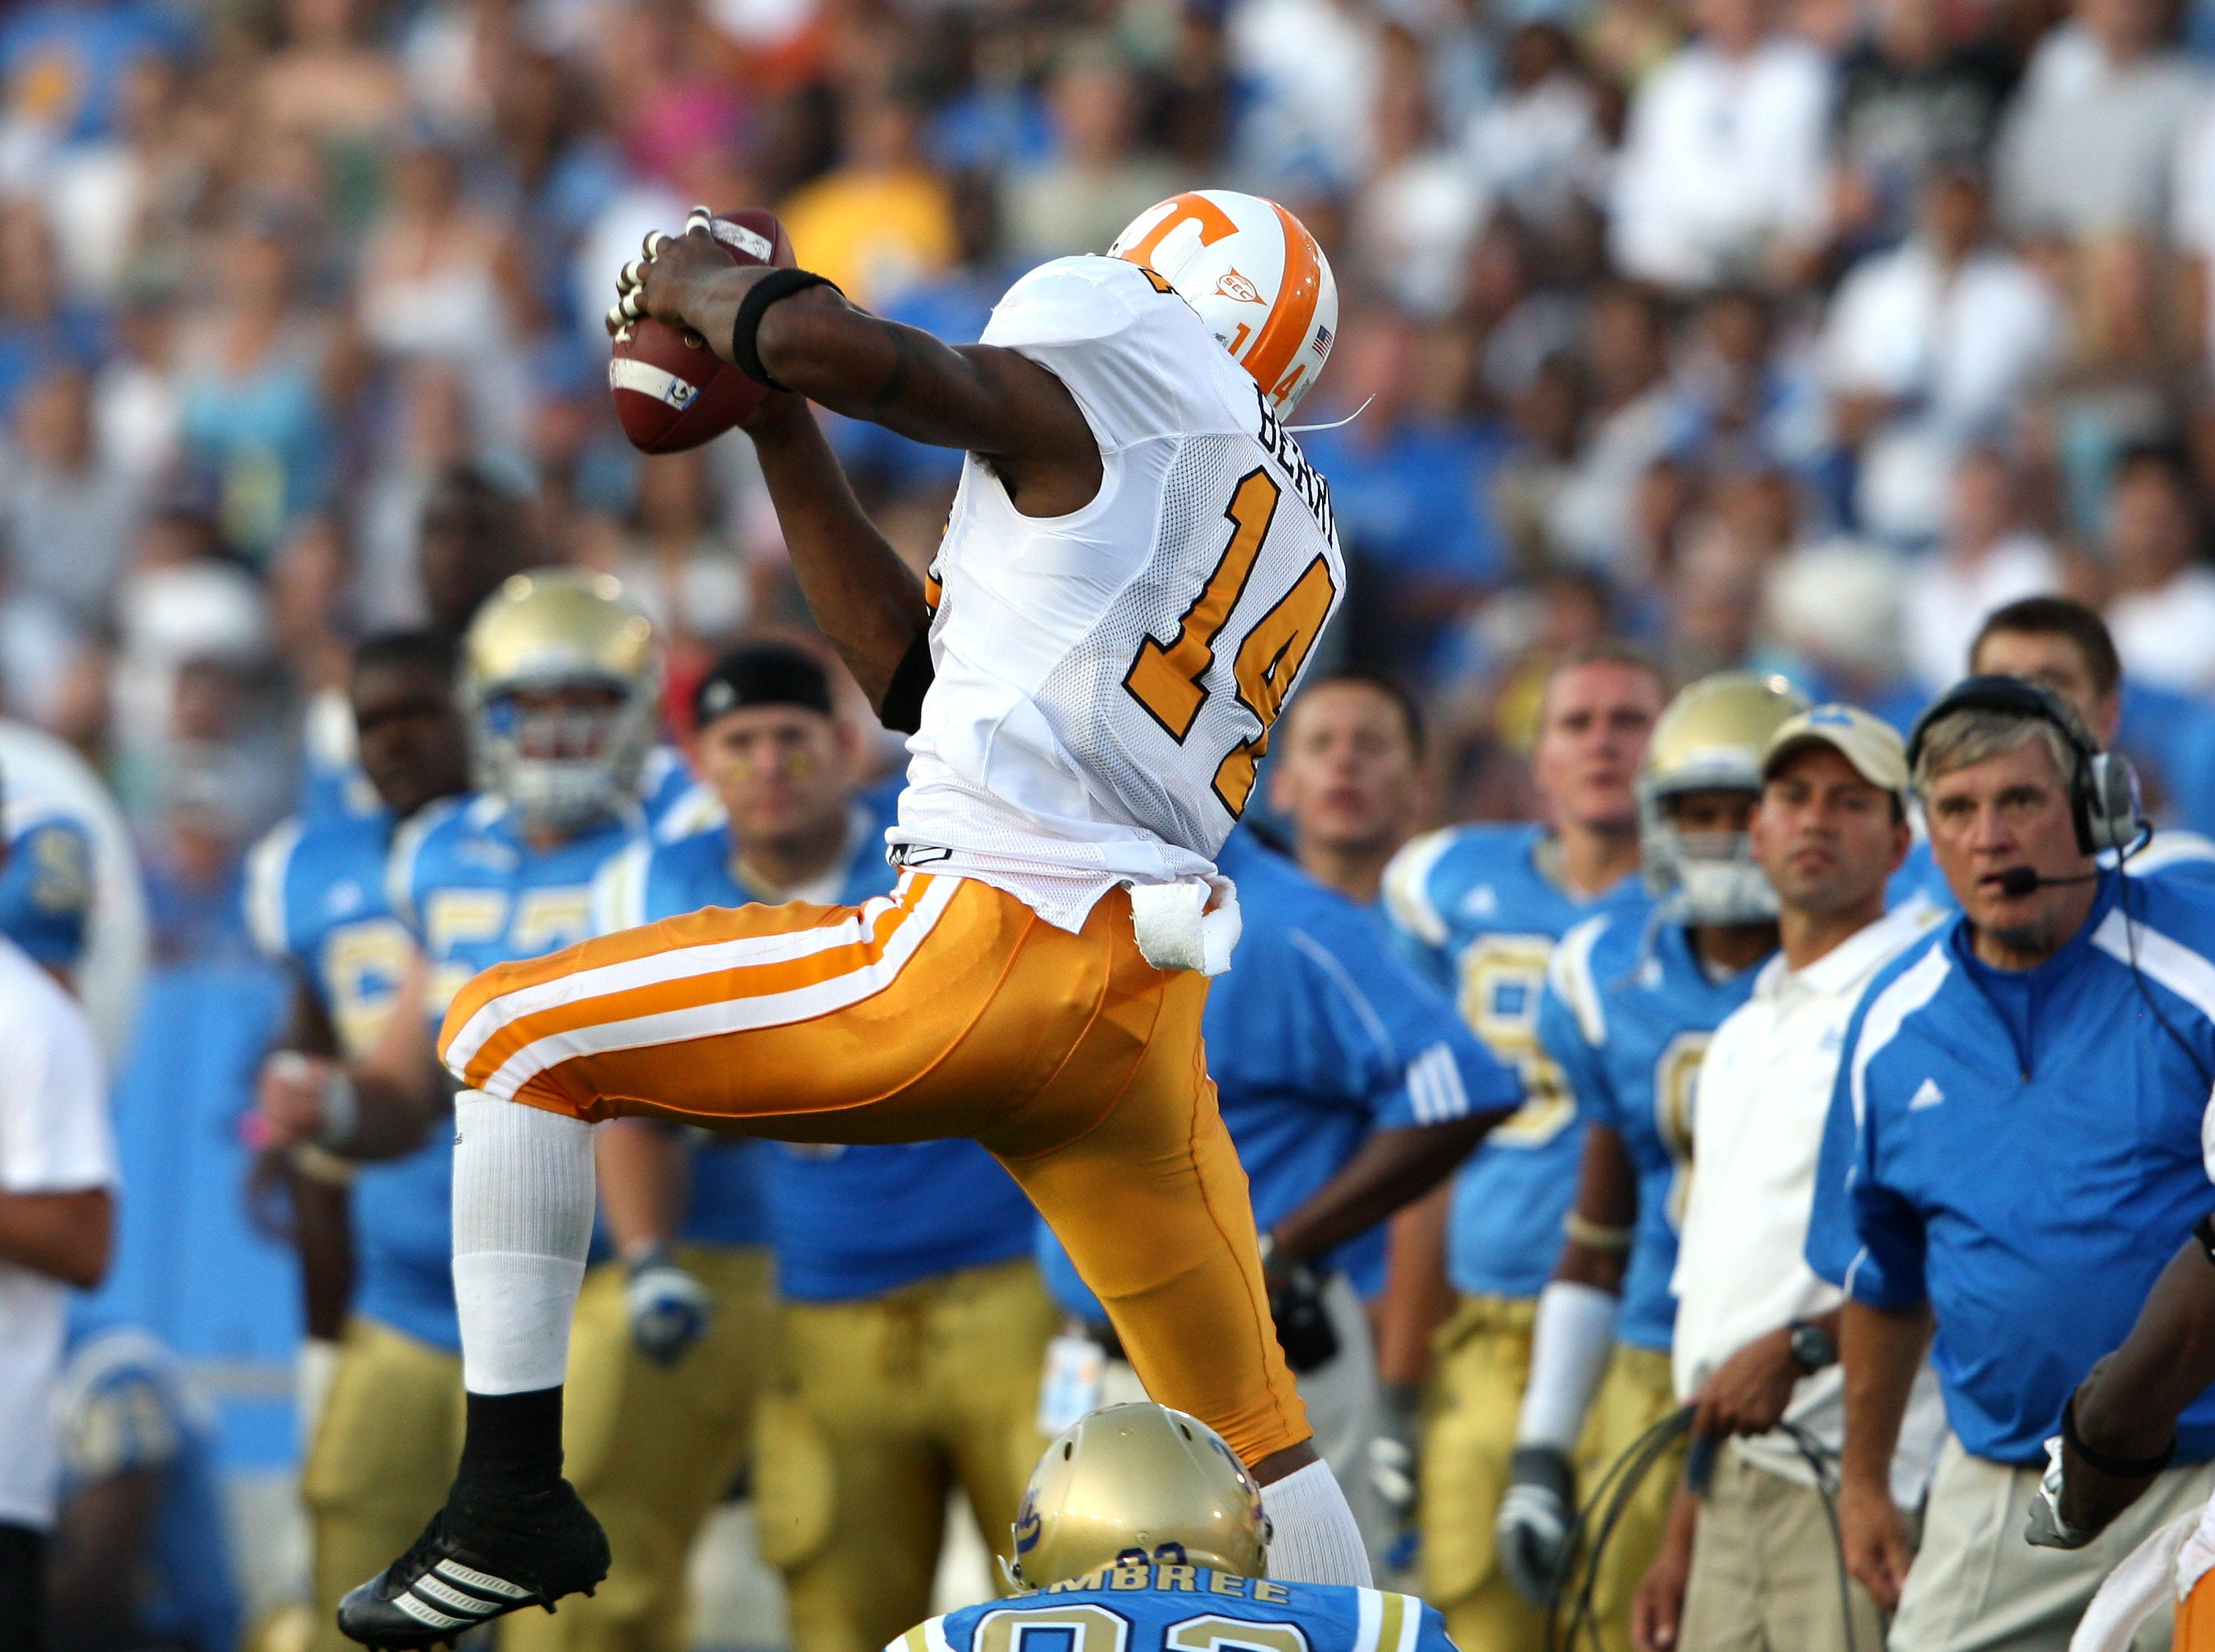 Tennessee defensive back Eric Berry intercepts the ball against UCLA during the first half of a college football game, Monday, Sept. 1, 2008, in Pasadena, Calif.